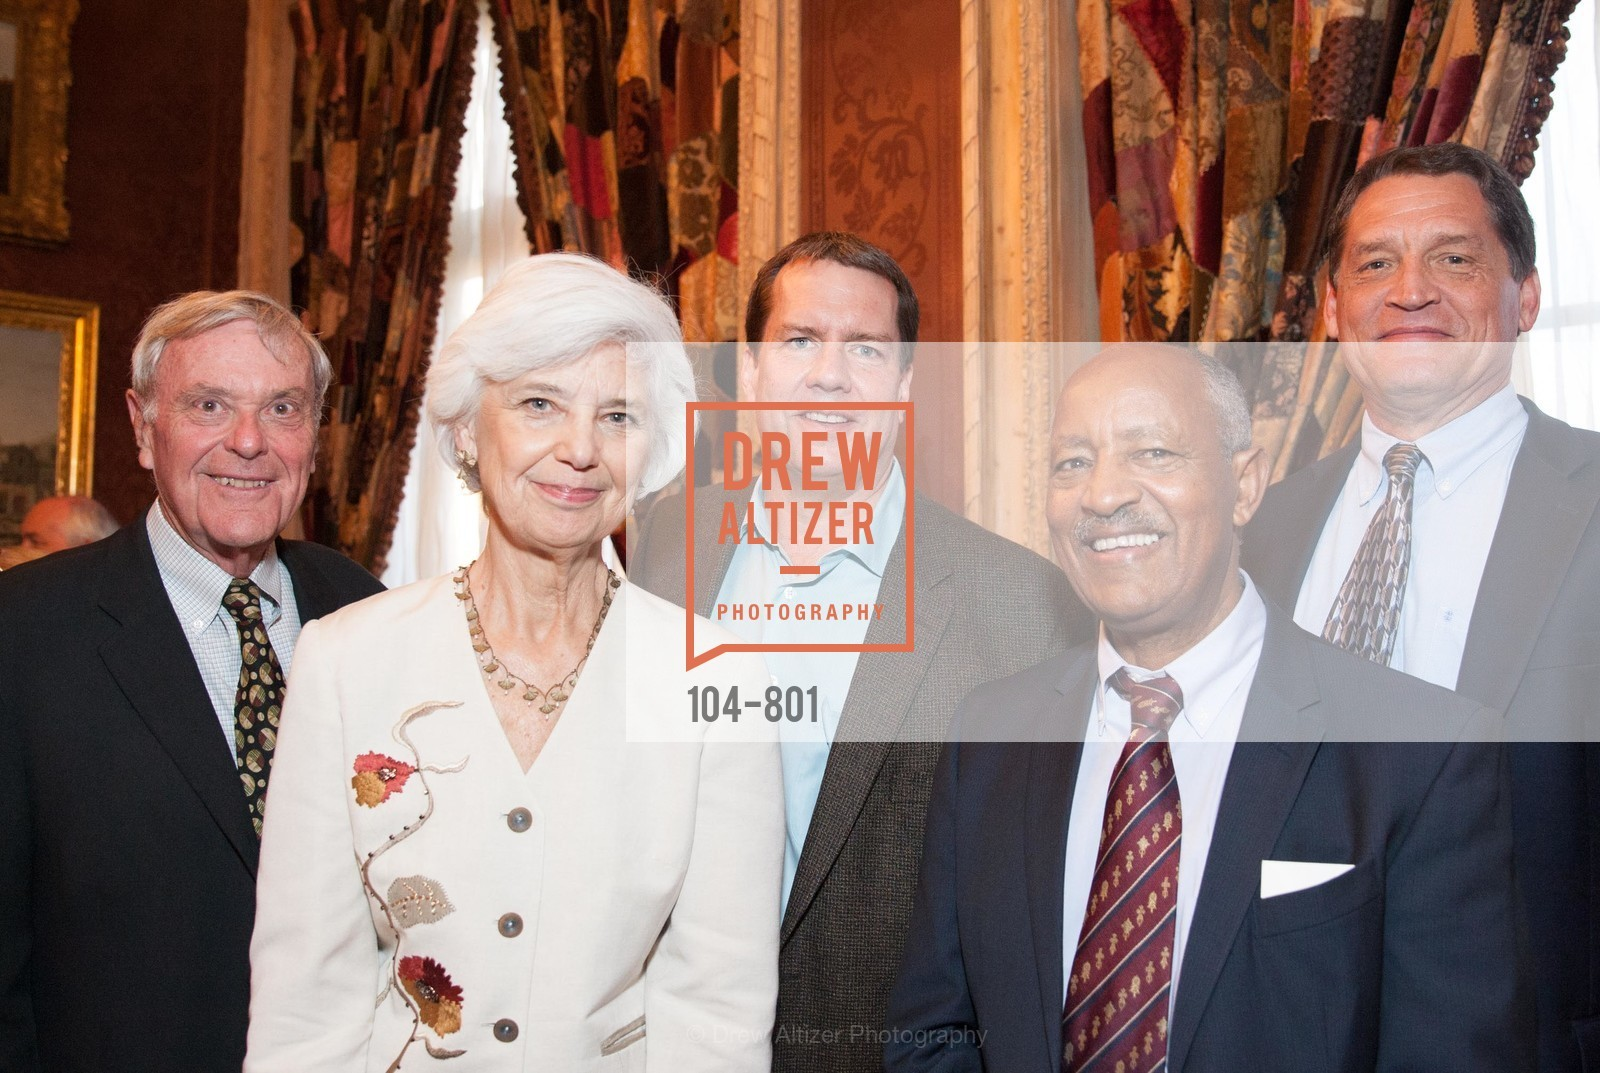 Clem Shute, Sherry Shute, Derhame Asfaw, Rob Blumenschine, GETTY Hosts Leakey Foundation Dinner, US, April 23rd, 2015,Drew Altizer, Drew Altizer Photography, full-service agency, private events, San Francisco photographer, photographer california